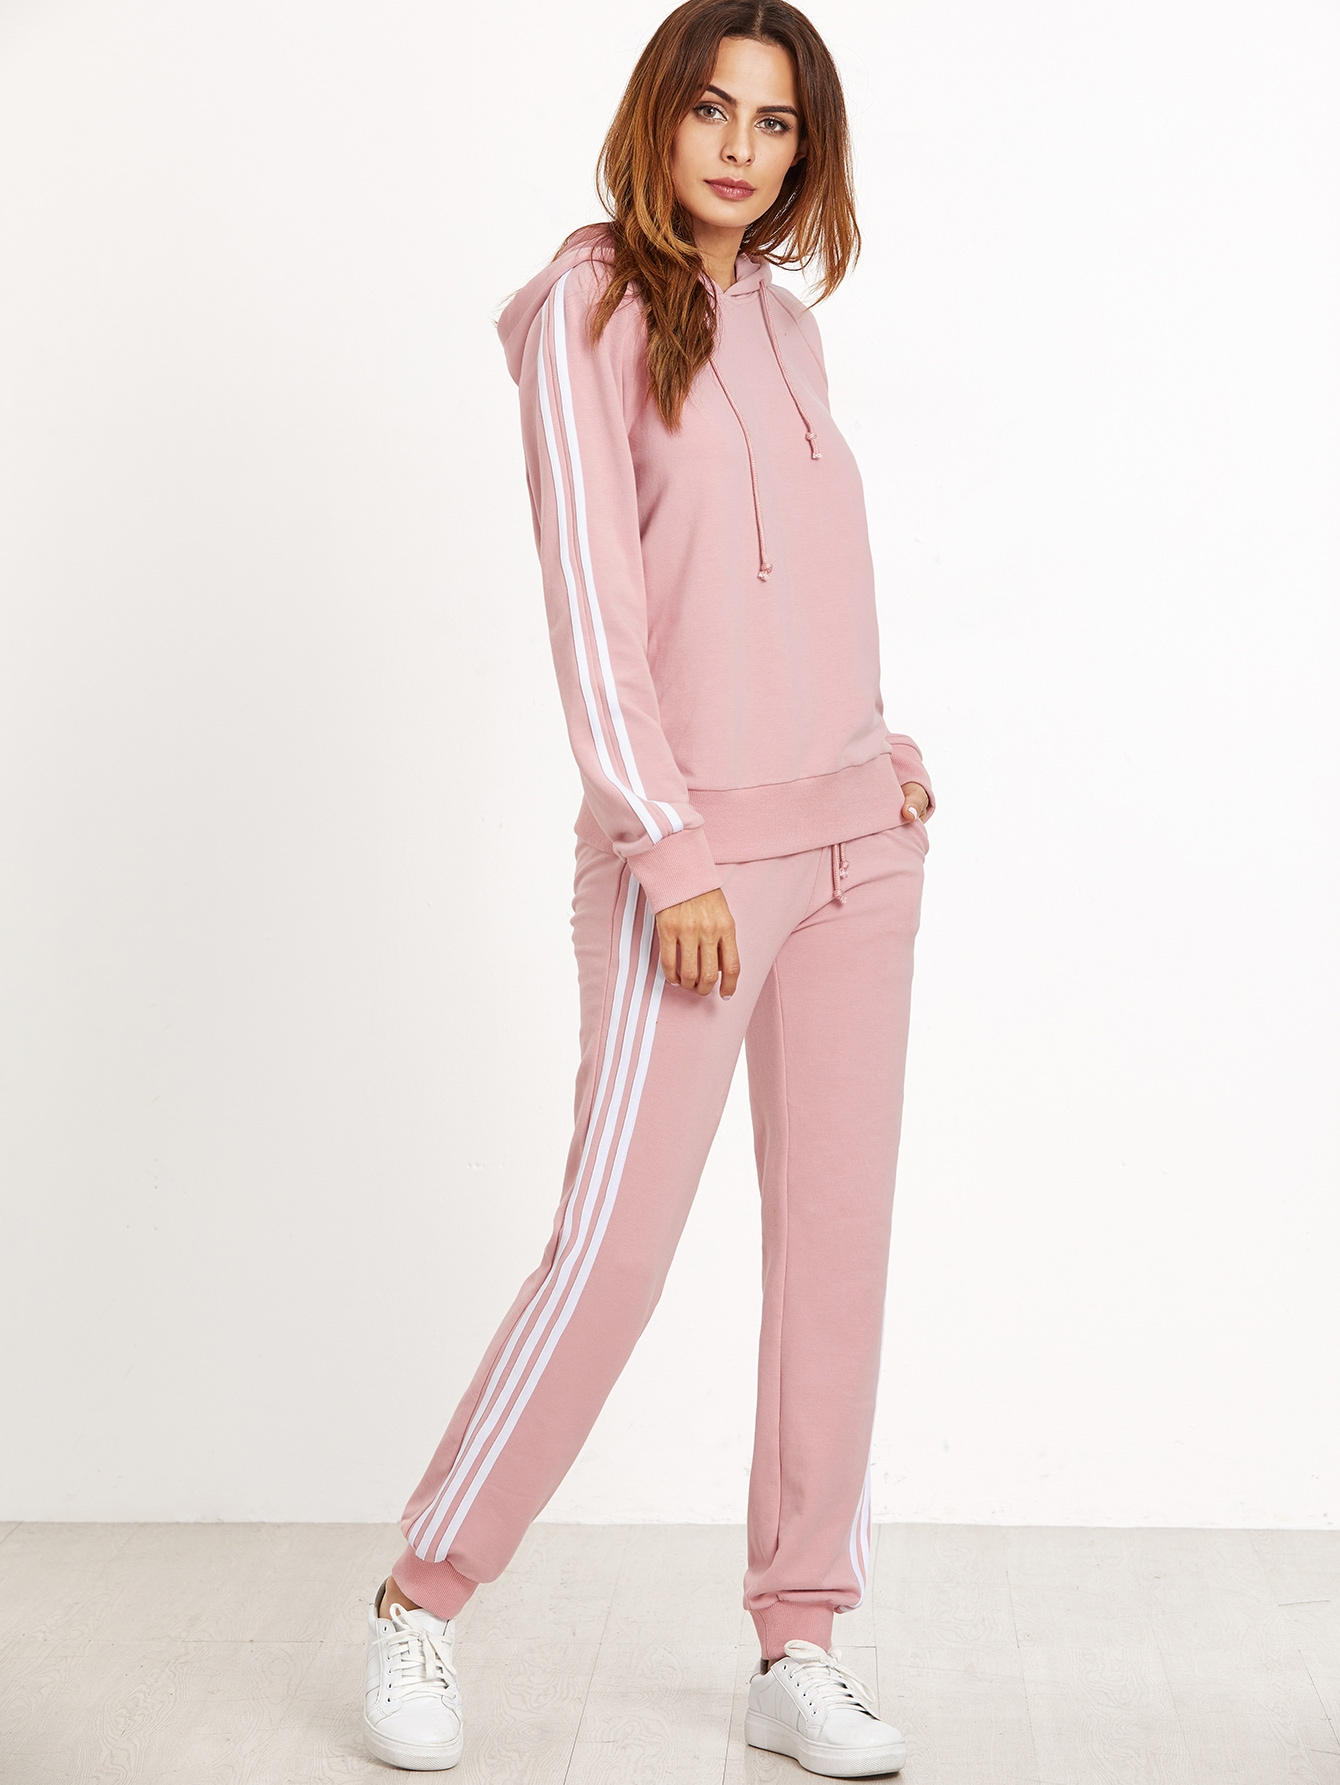 Pink Striped Sideseam Hooded Sweat Suit twopiece161021701